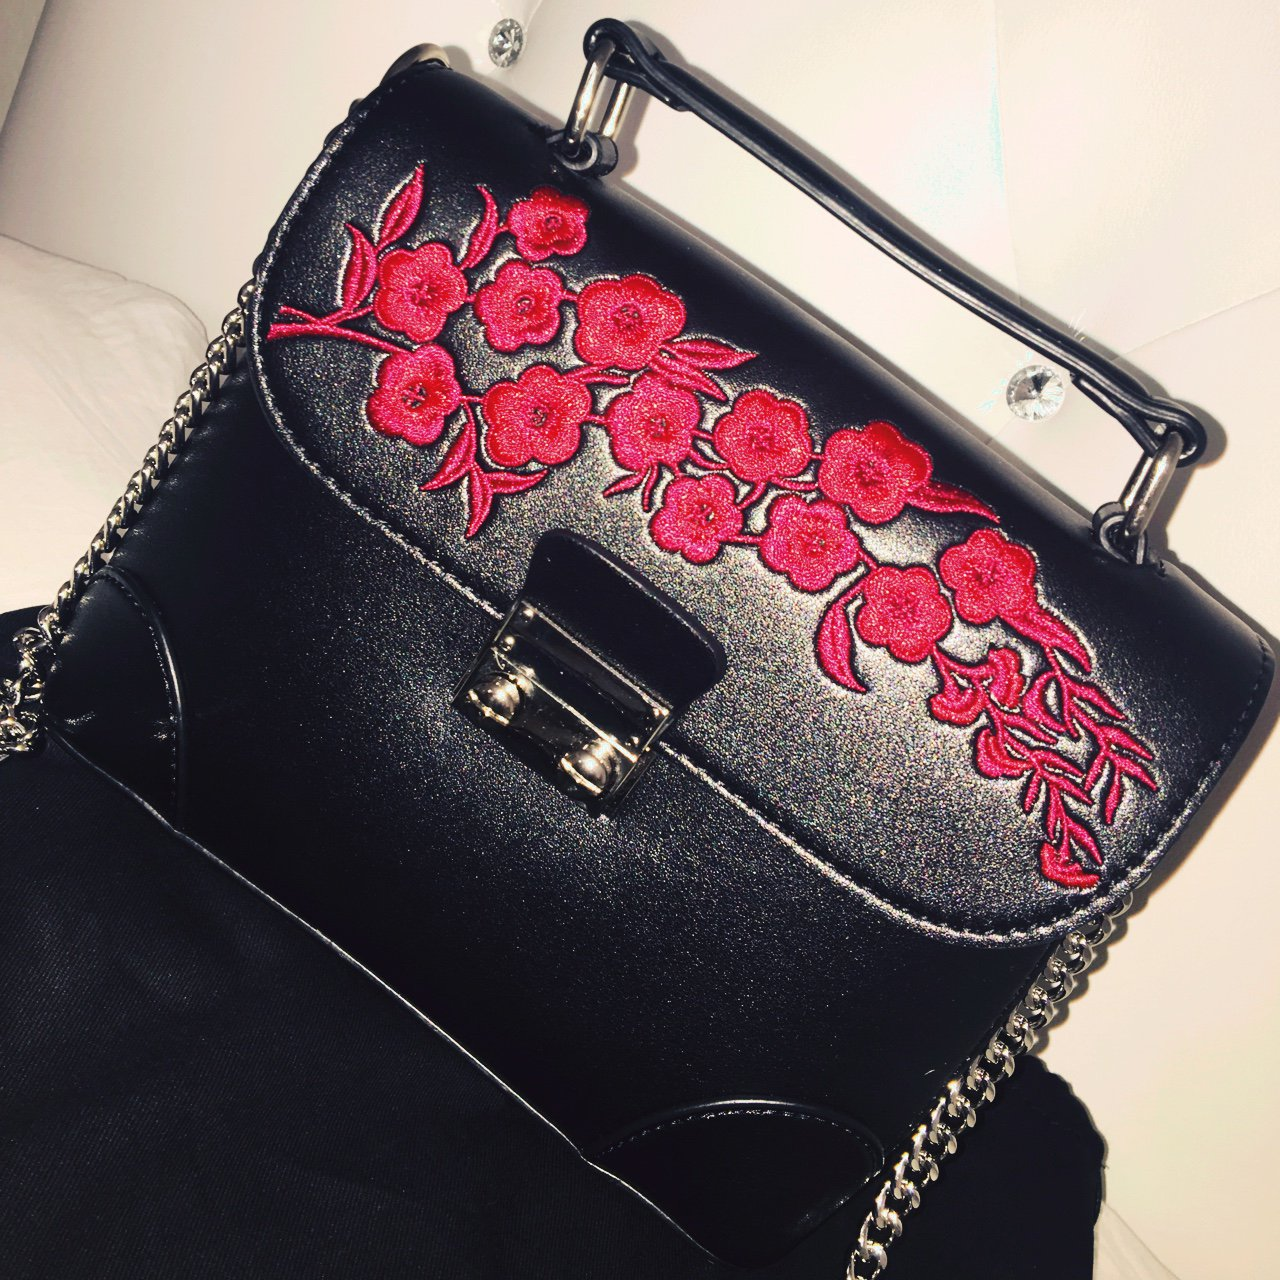 bcf2e473588b Black  floral  purse  crossbody  bag outfitted with sleek a - Depop